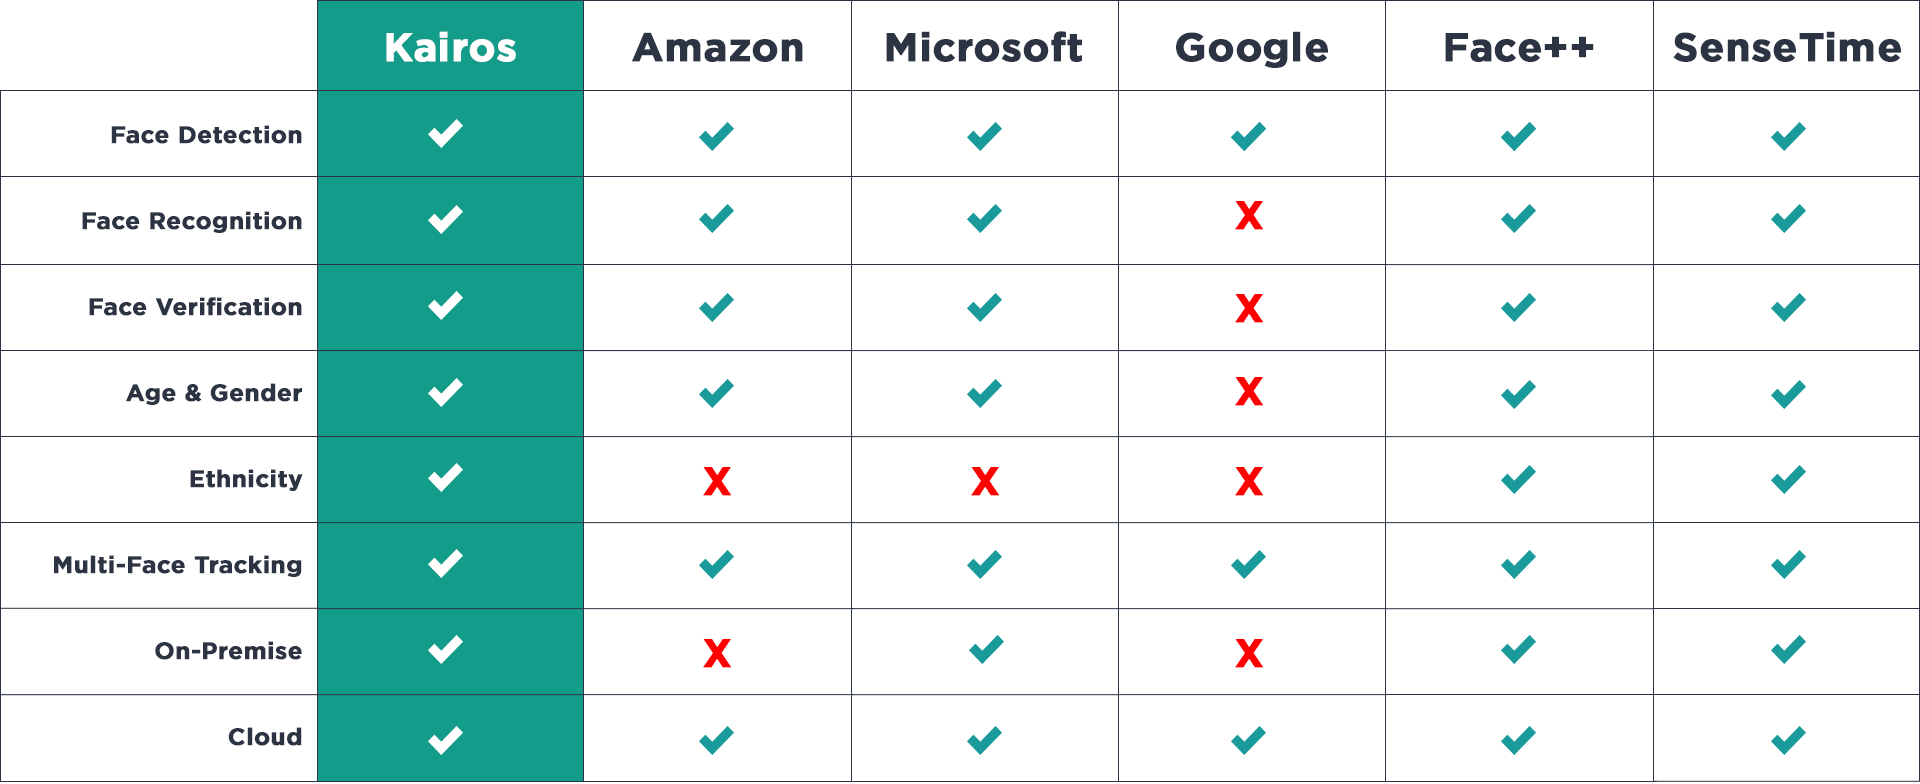 Comparison grid showing face recognition companies: Kairos, Amazon, Microsoft, Google, Face++, and SenseTime